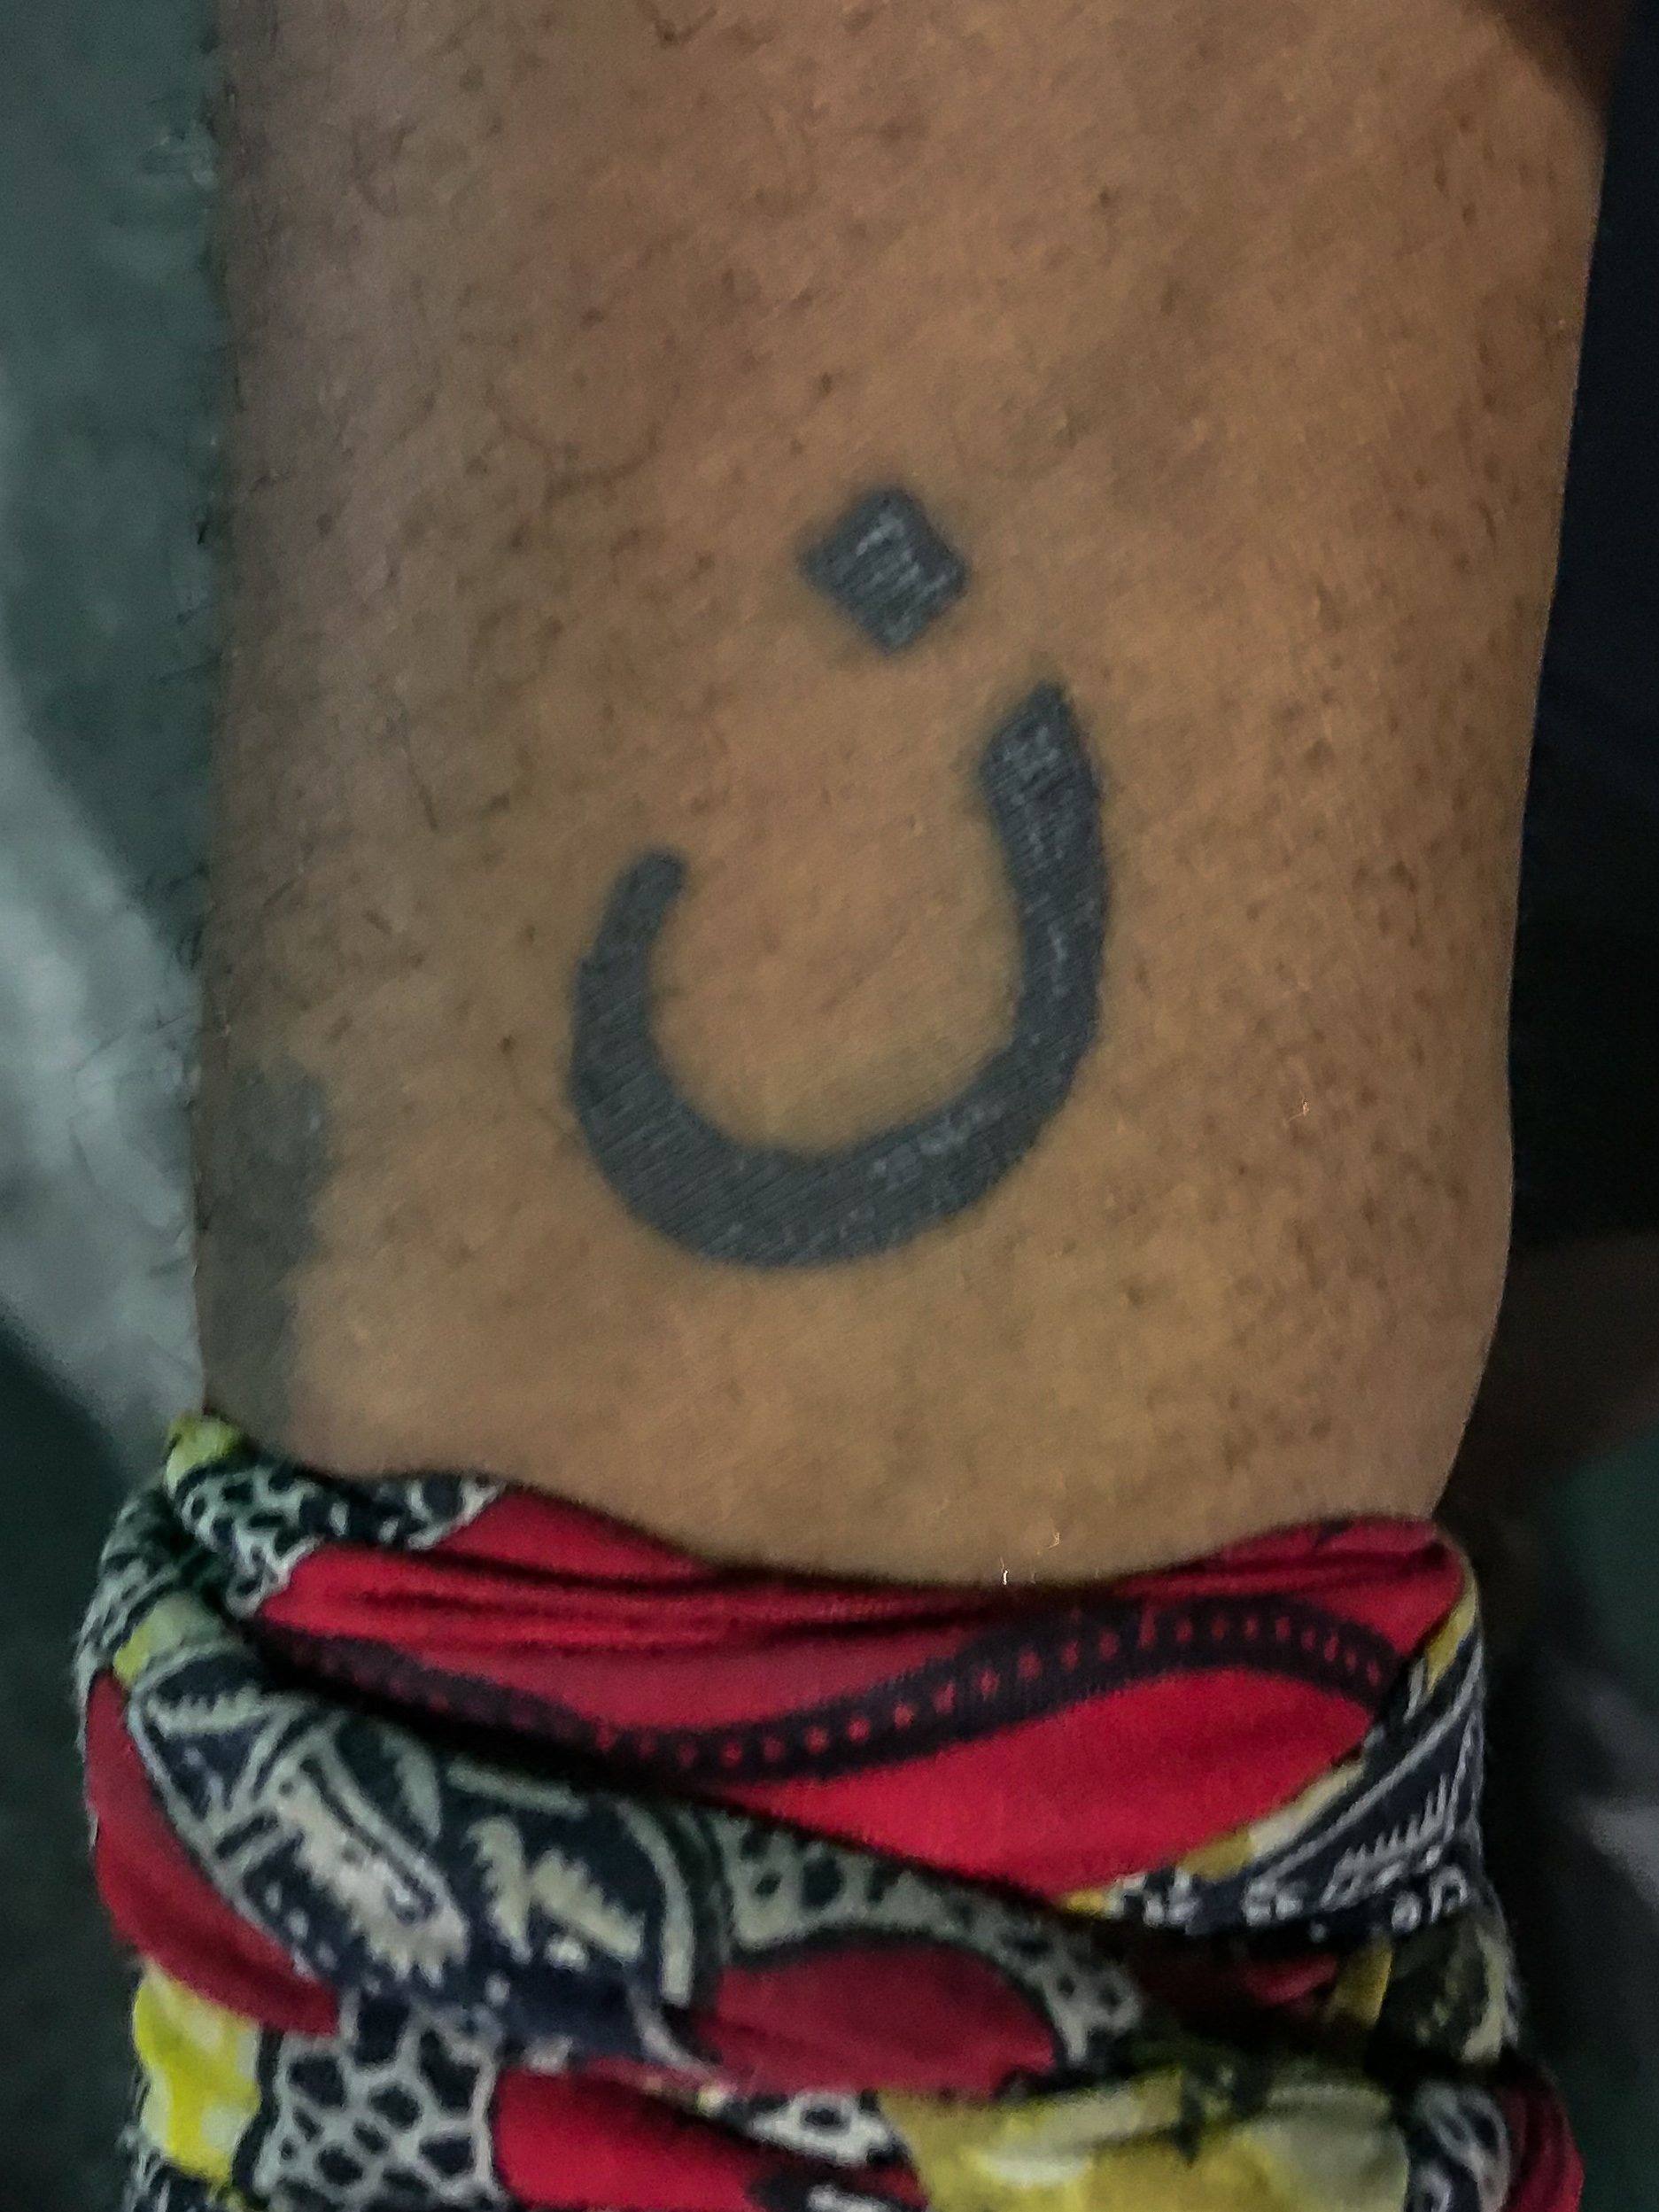 This is Mykel Perdue. This tattoo is the Arabic symbol for the letter 'N'. It is to represent the Israelites crucified a Nazarene and Perdue relates to and is a brother of all persecuted Christians around the world.